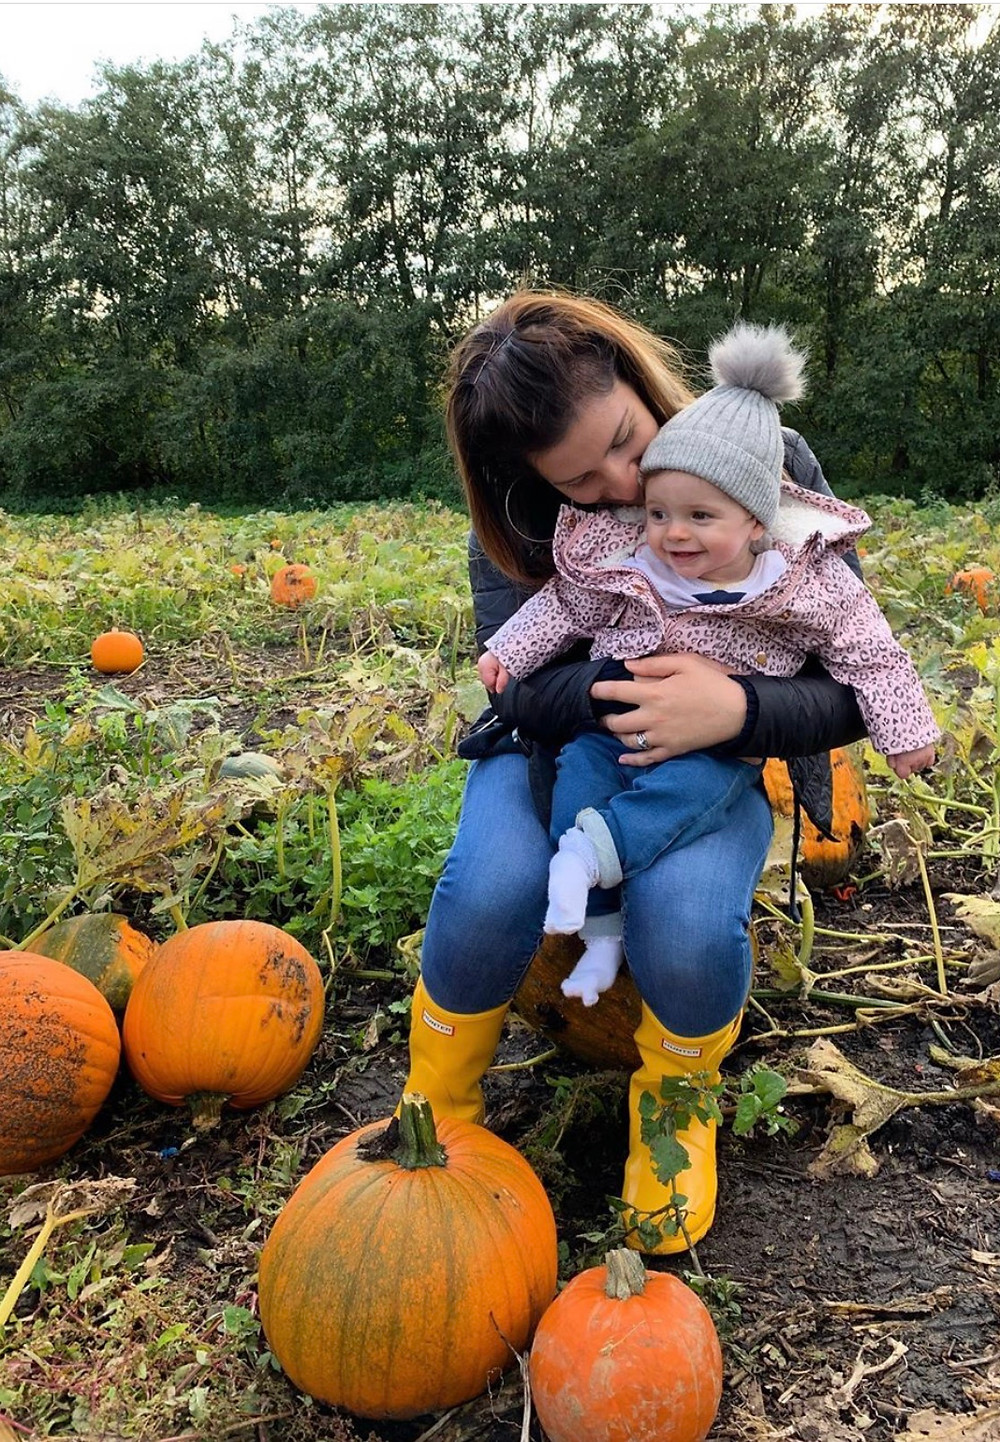 Mum with baby looking at pumpkins